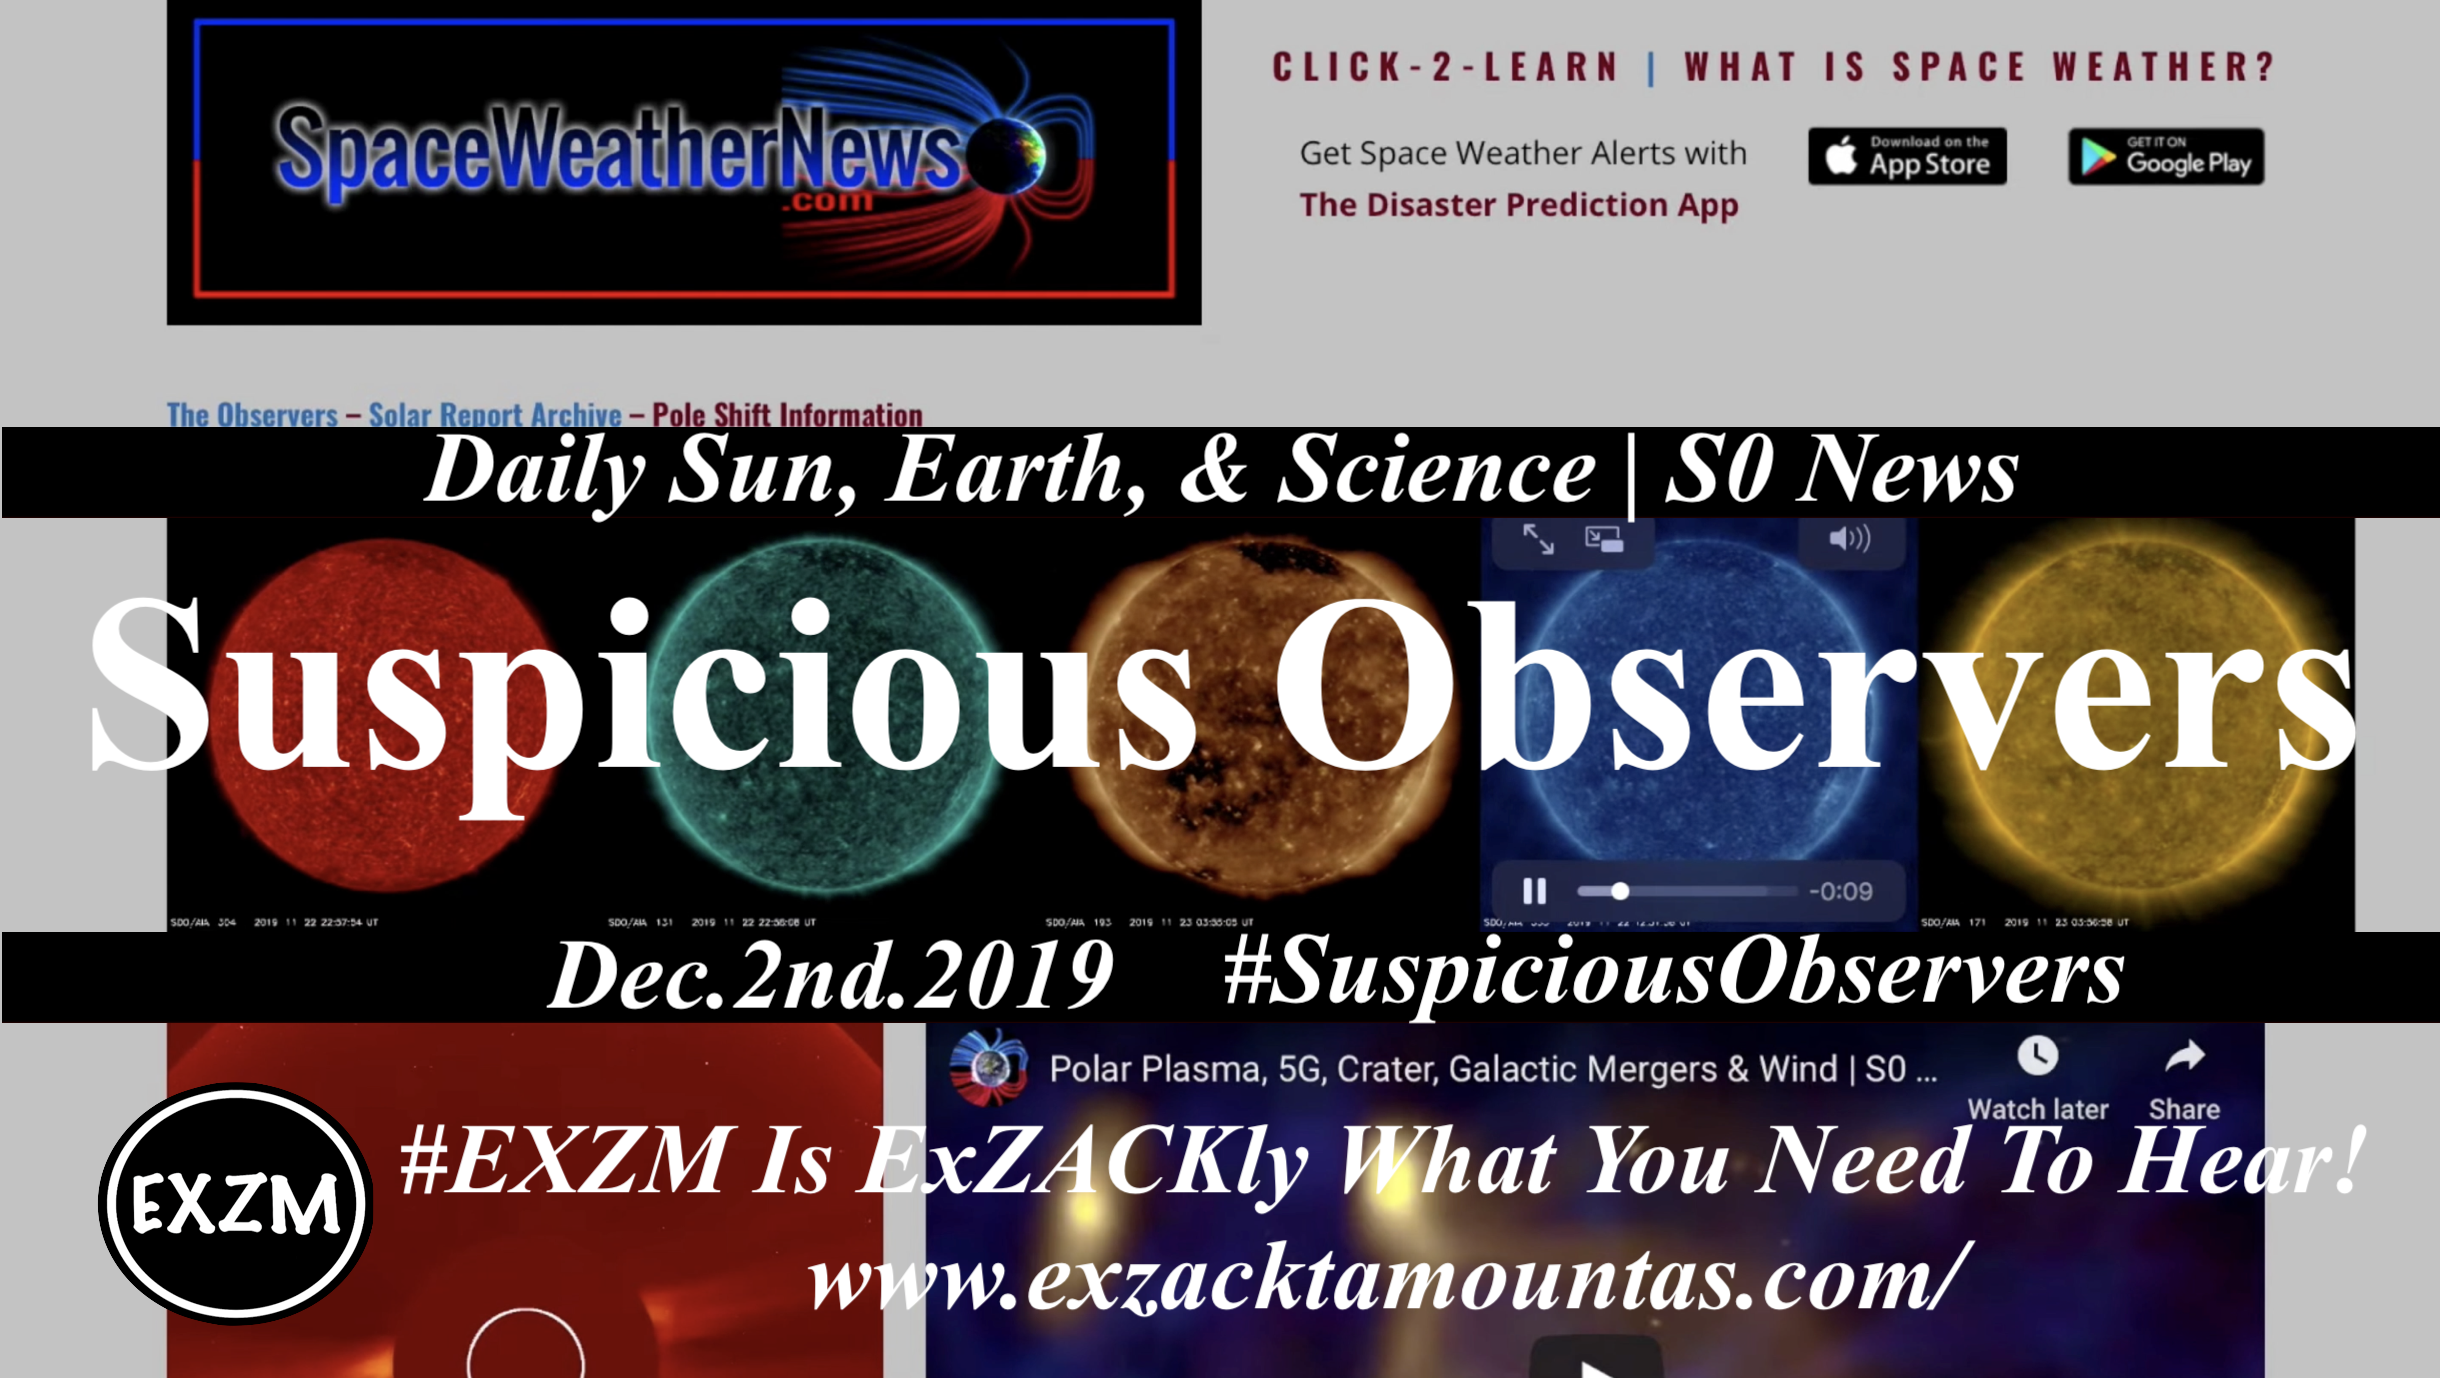 EXZM Suspicious Observers post official 12 2 2019